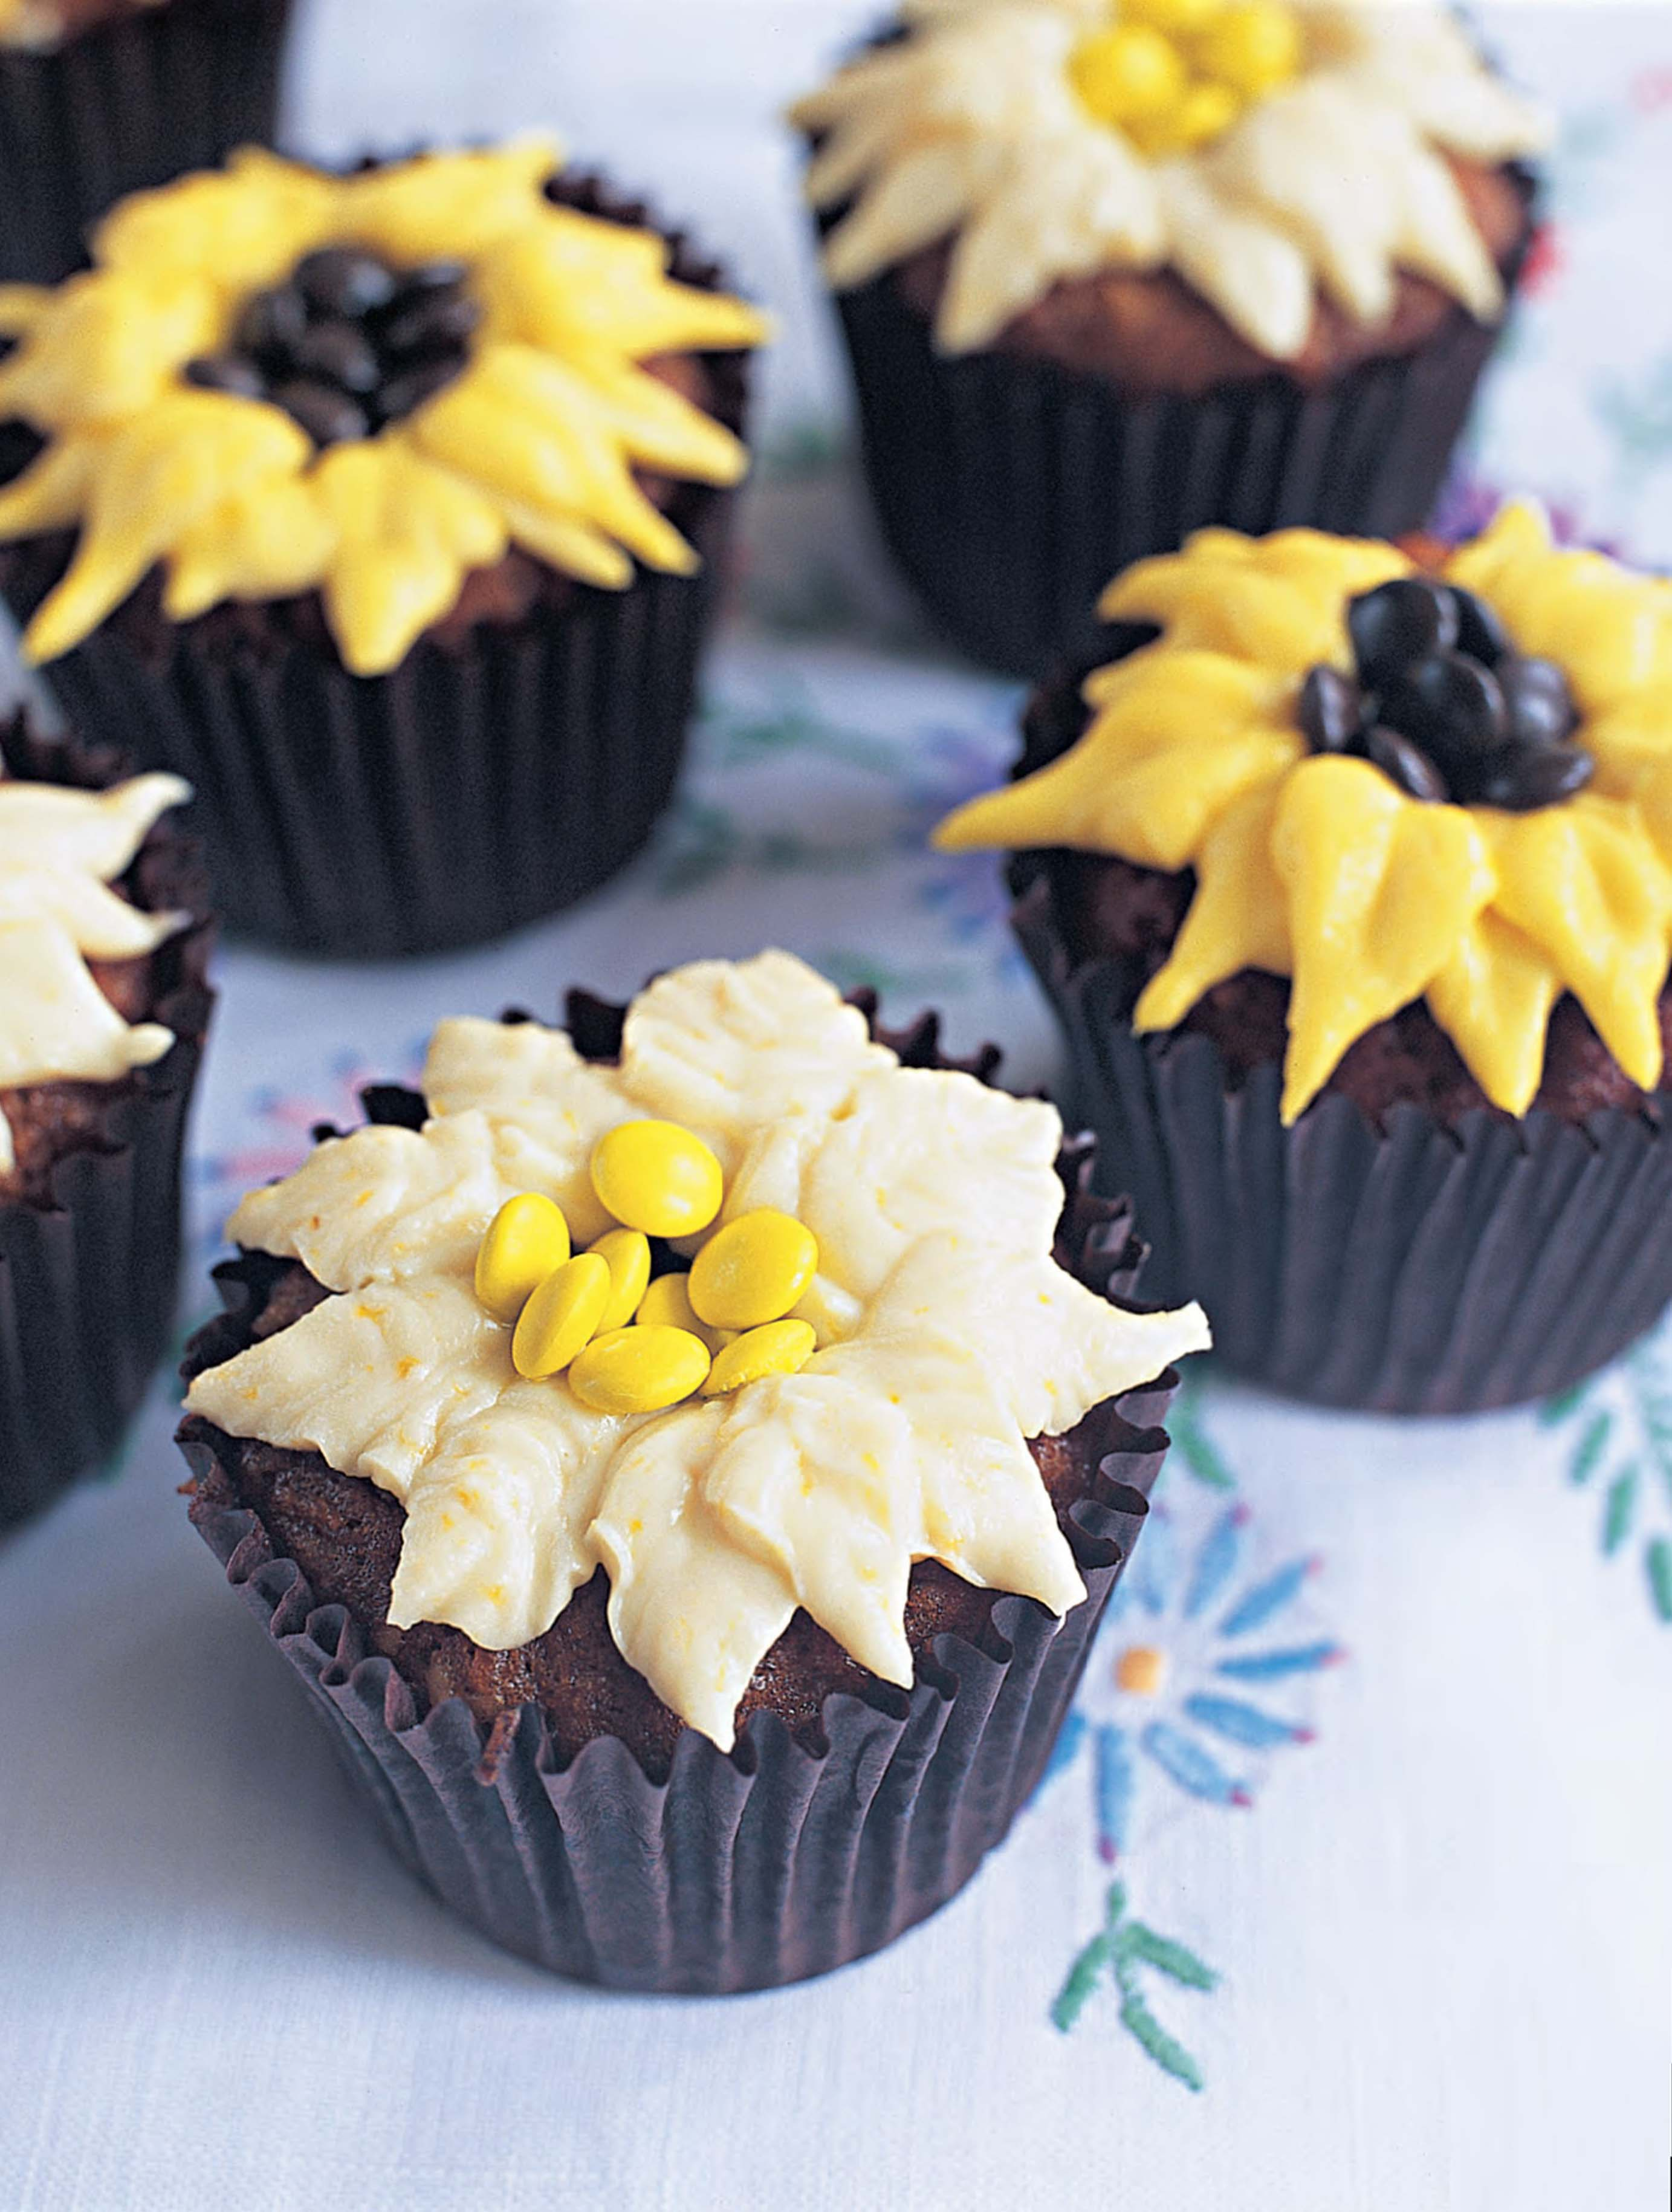 Daisy and sunflower cupcakes